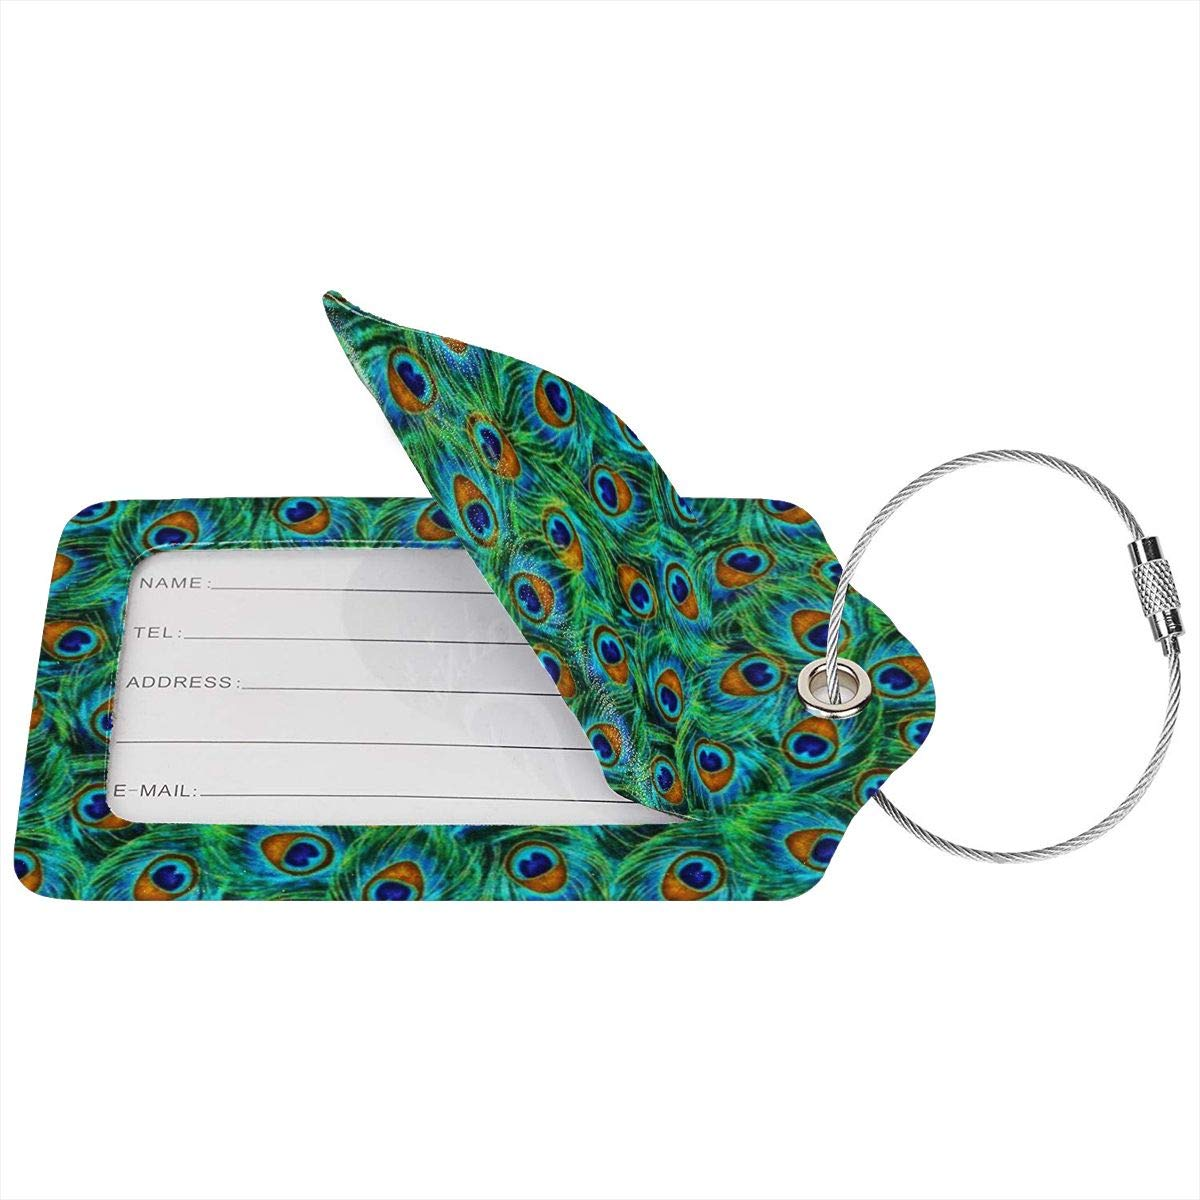 Beautiful Peacock Feathers Luggage Tag Label Travel Bag Label With Privacy Cover Luggage Tag Leather Personalized Suitcase Tag Travel Accessories